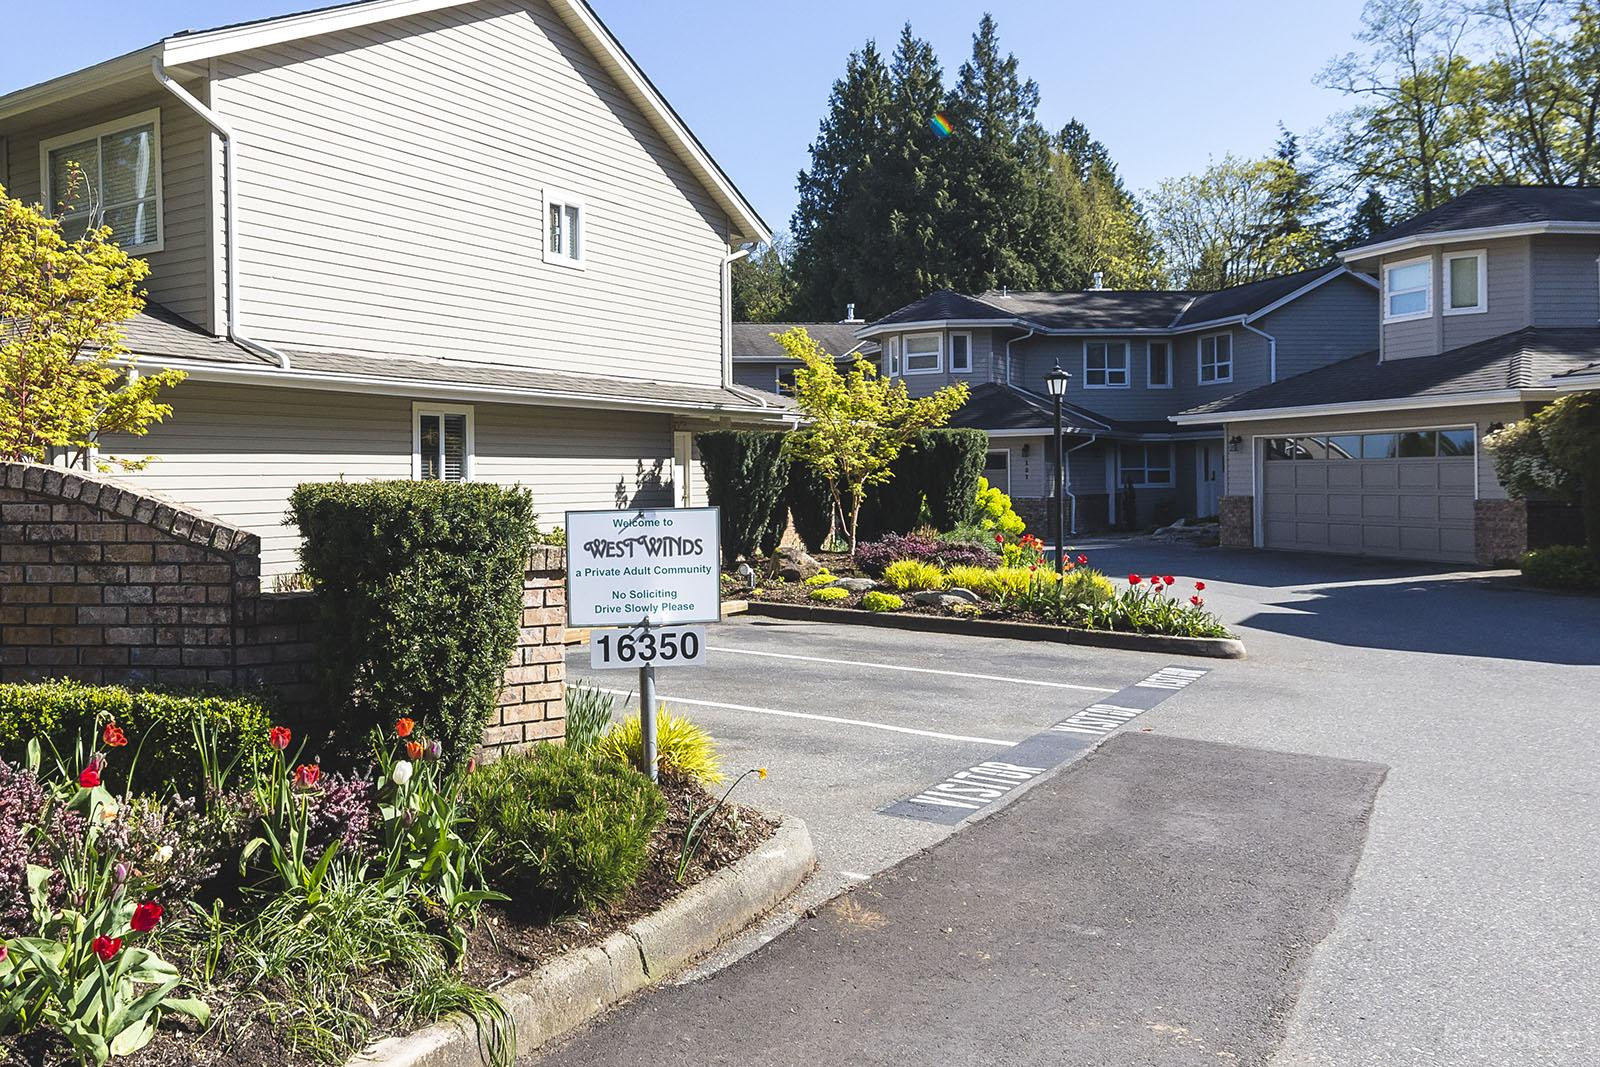 Westwinds at 16350 14 Ave, Surrey 0